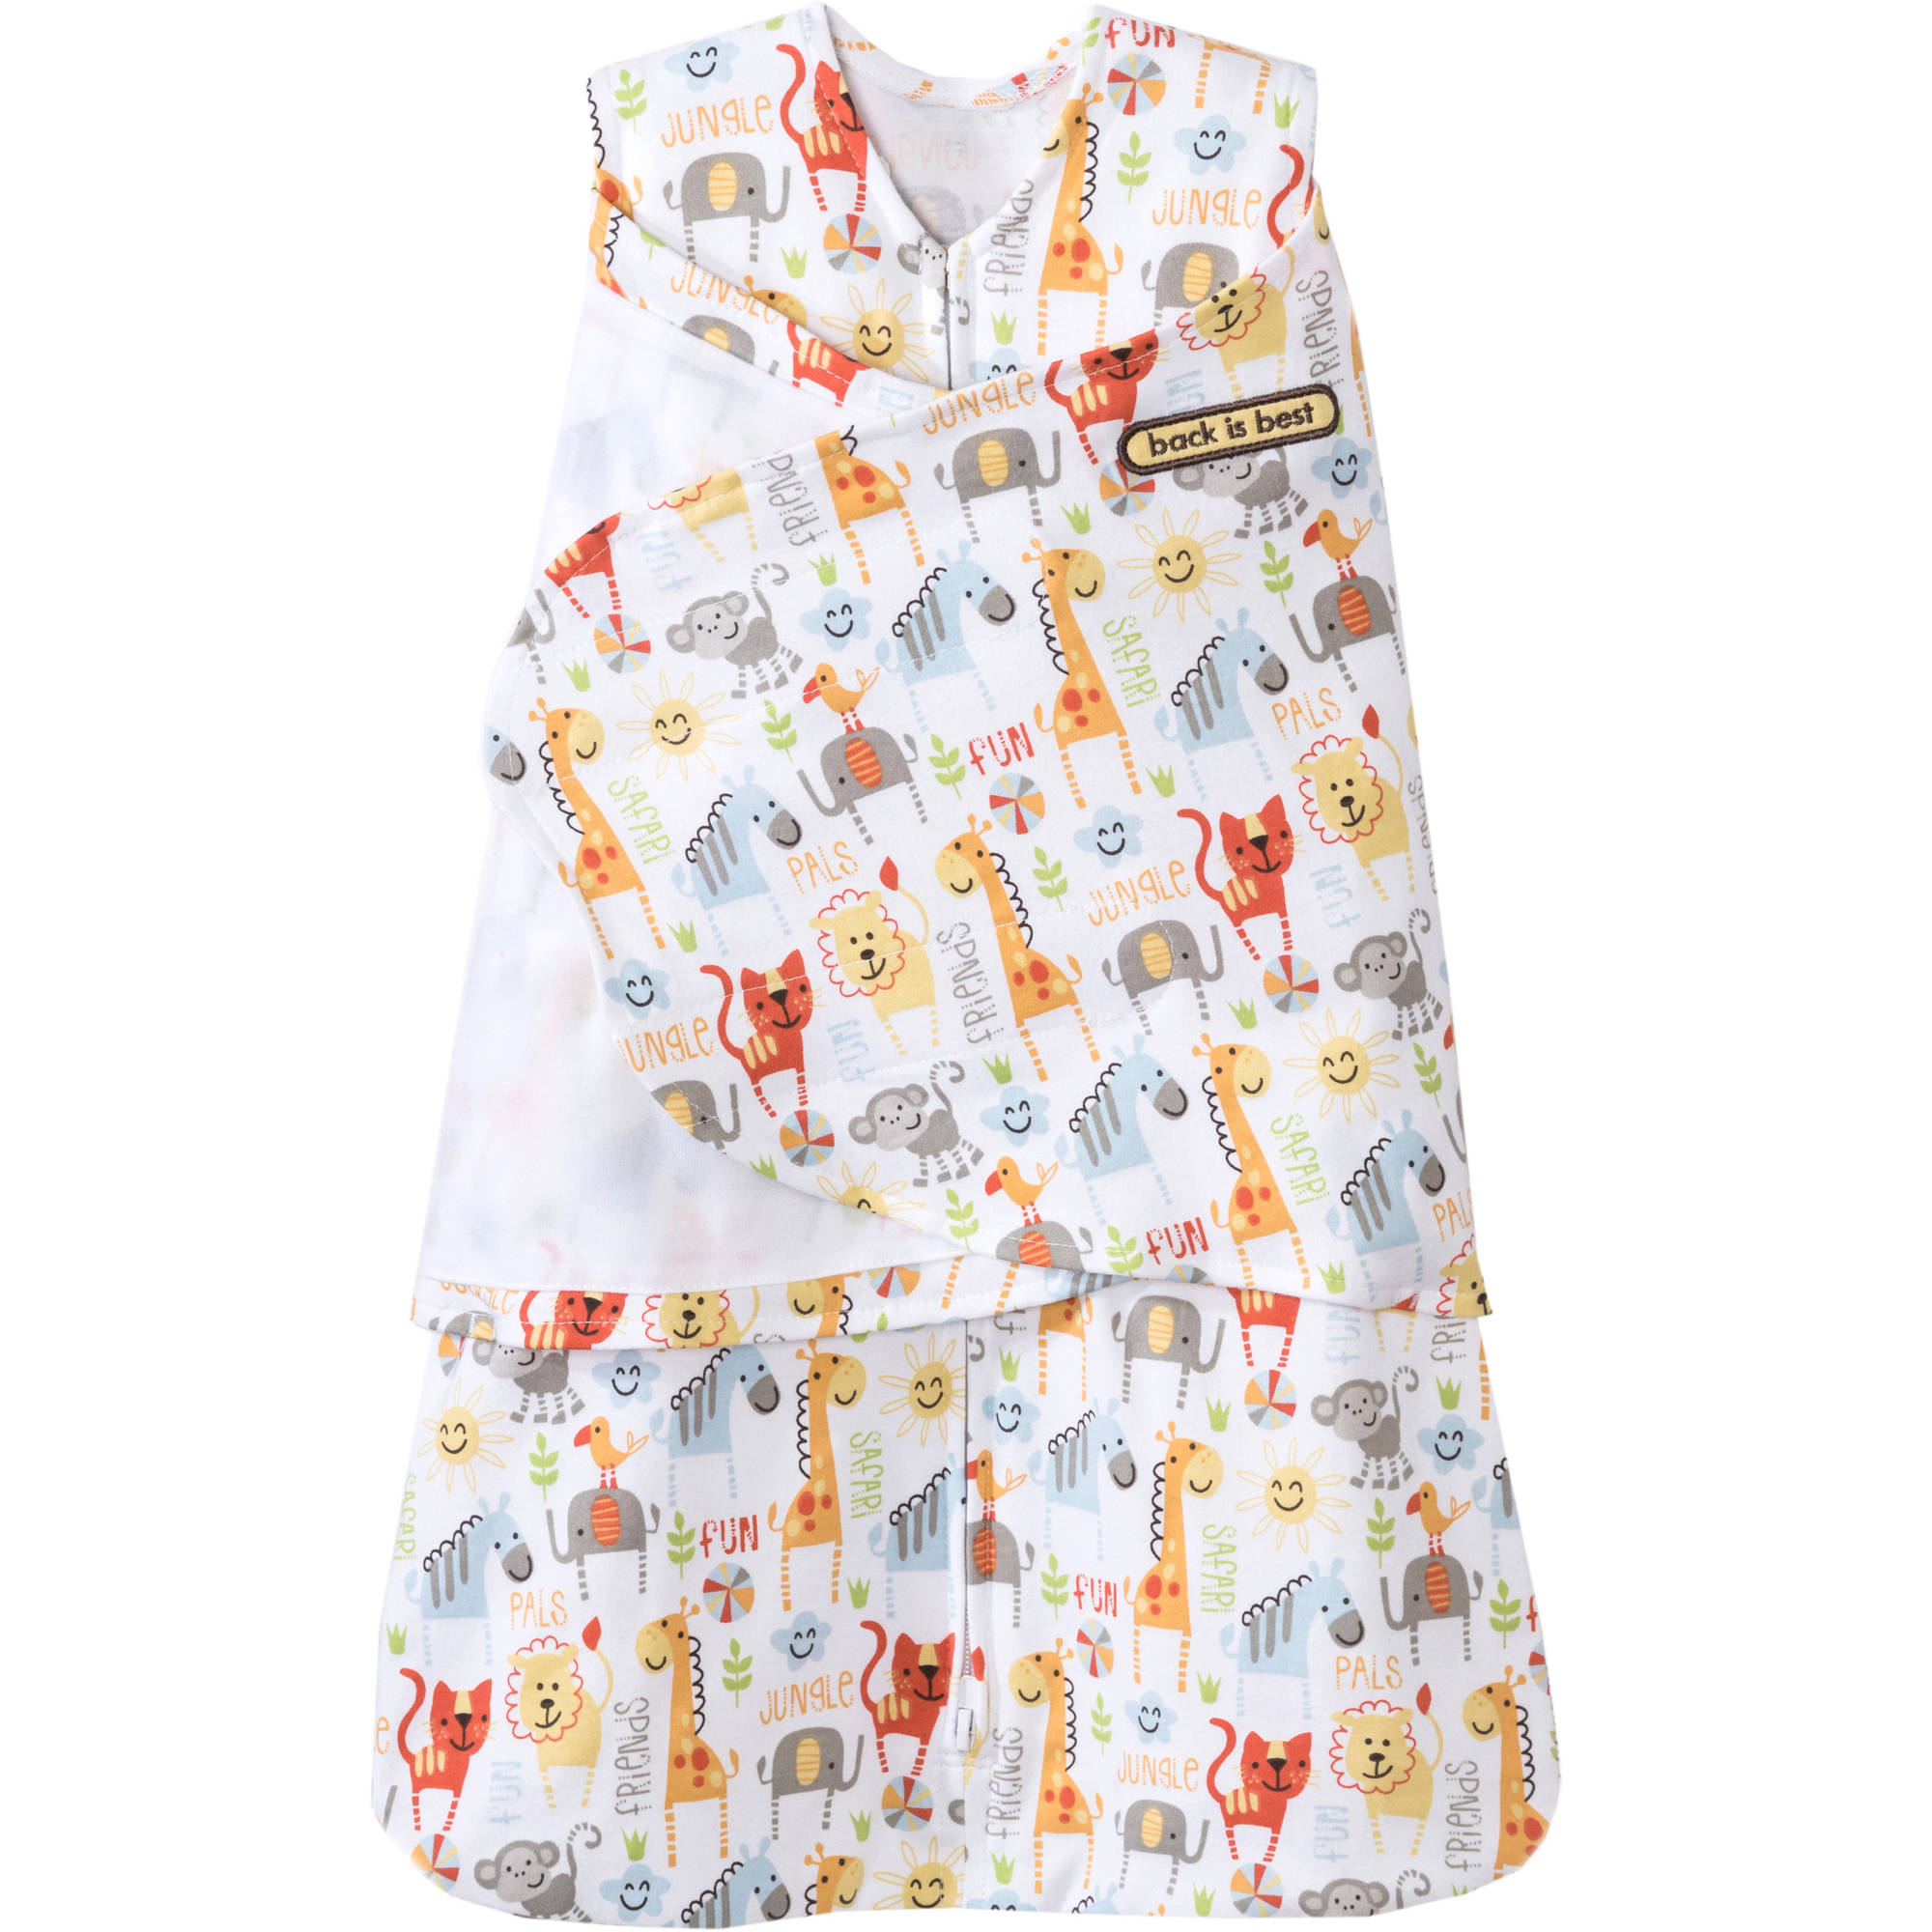 HALO SleepSack 100 Percent Cotton Swaddle